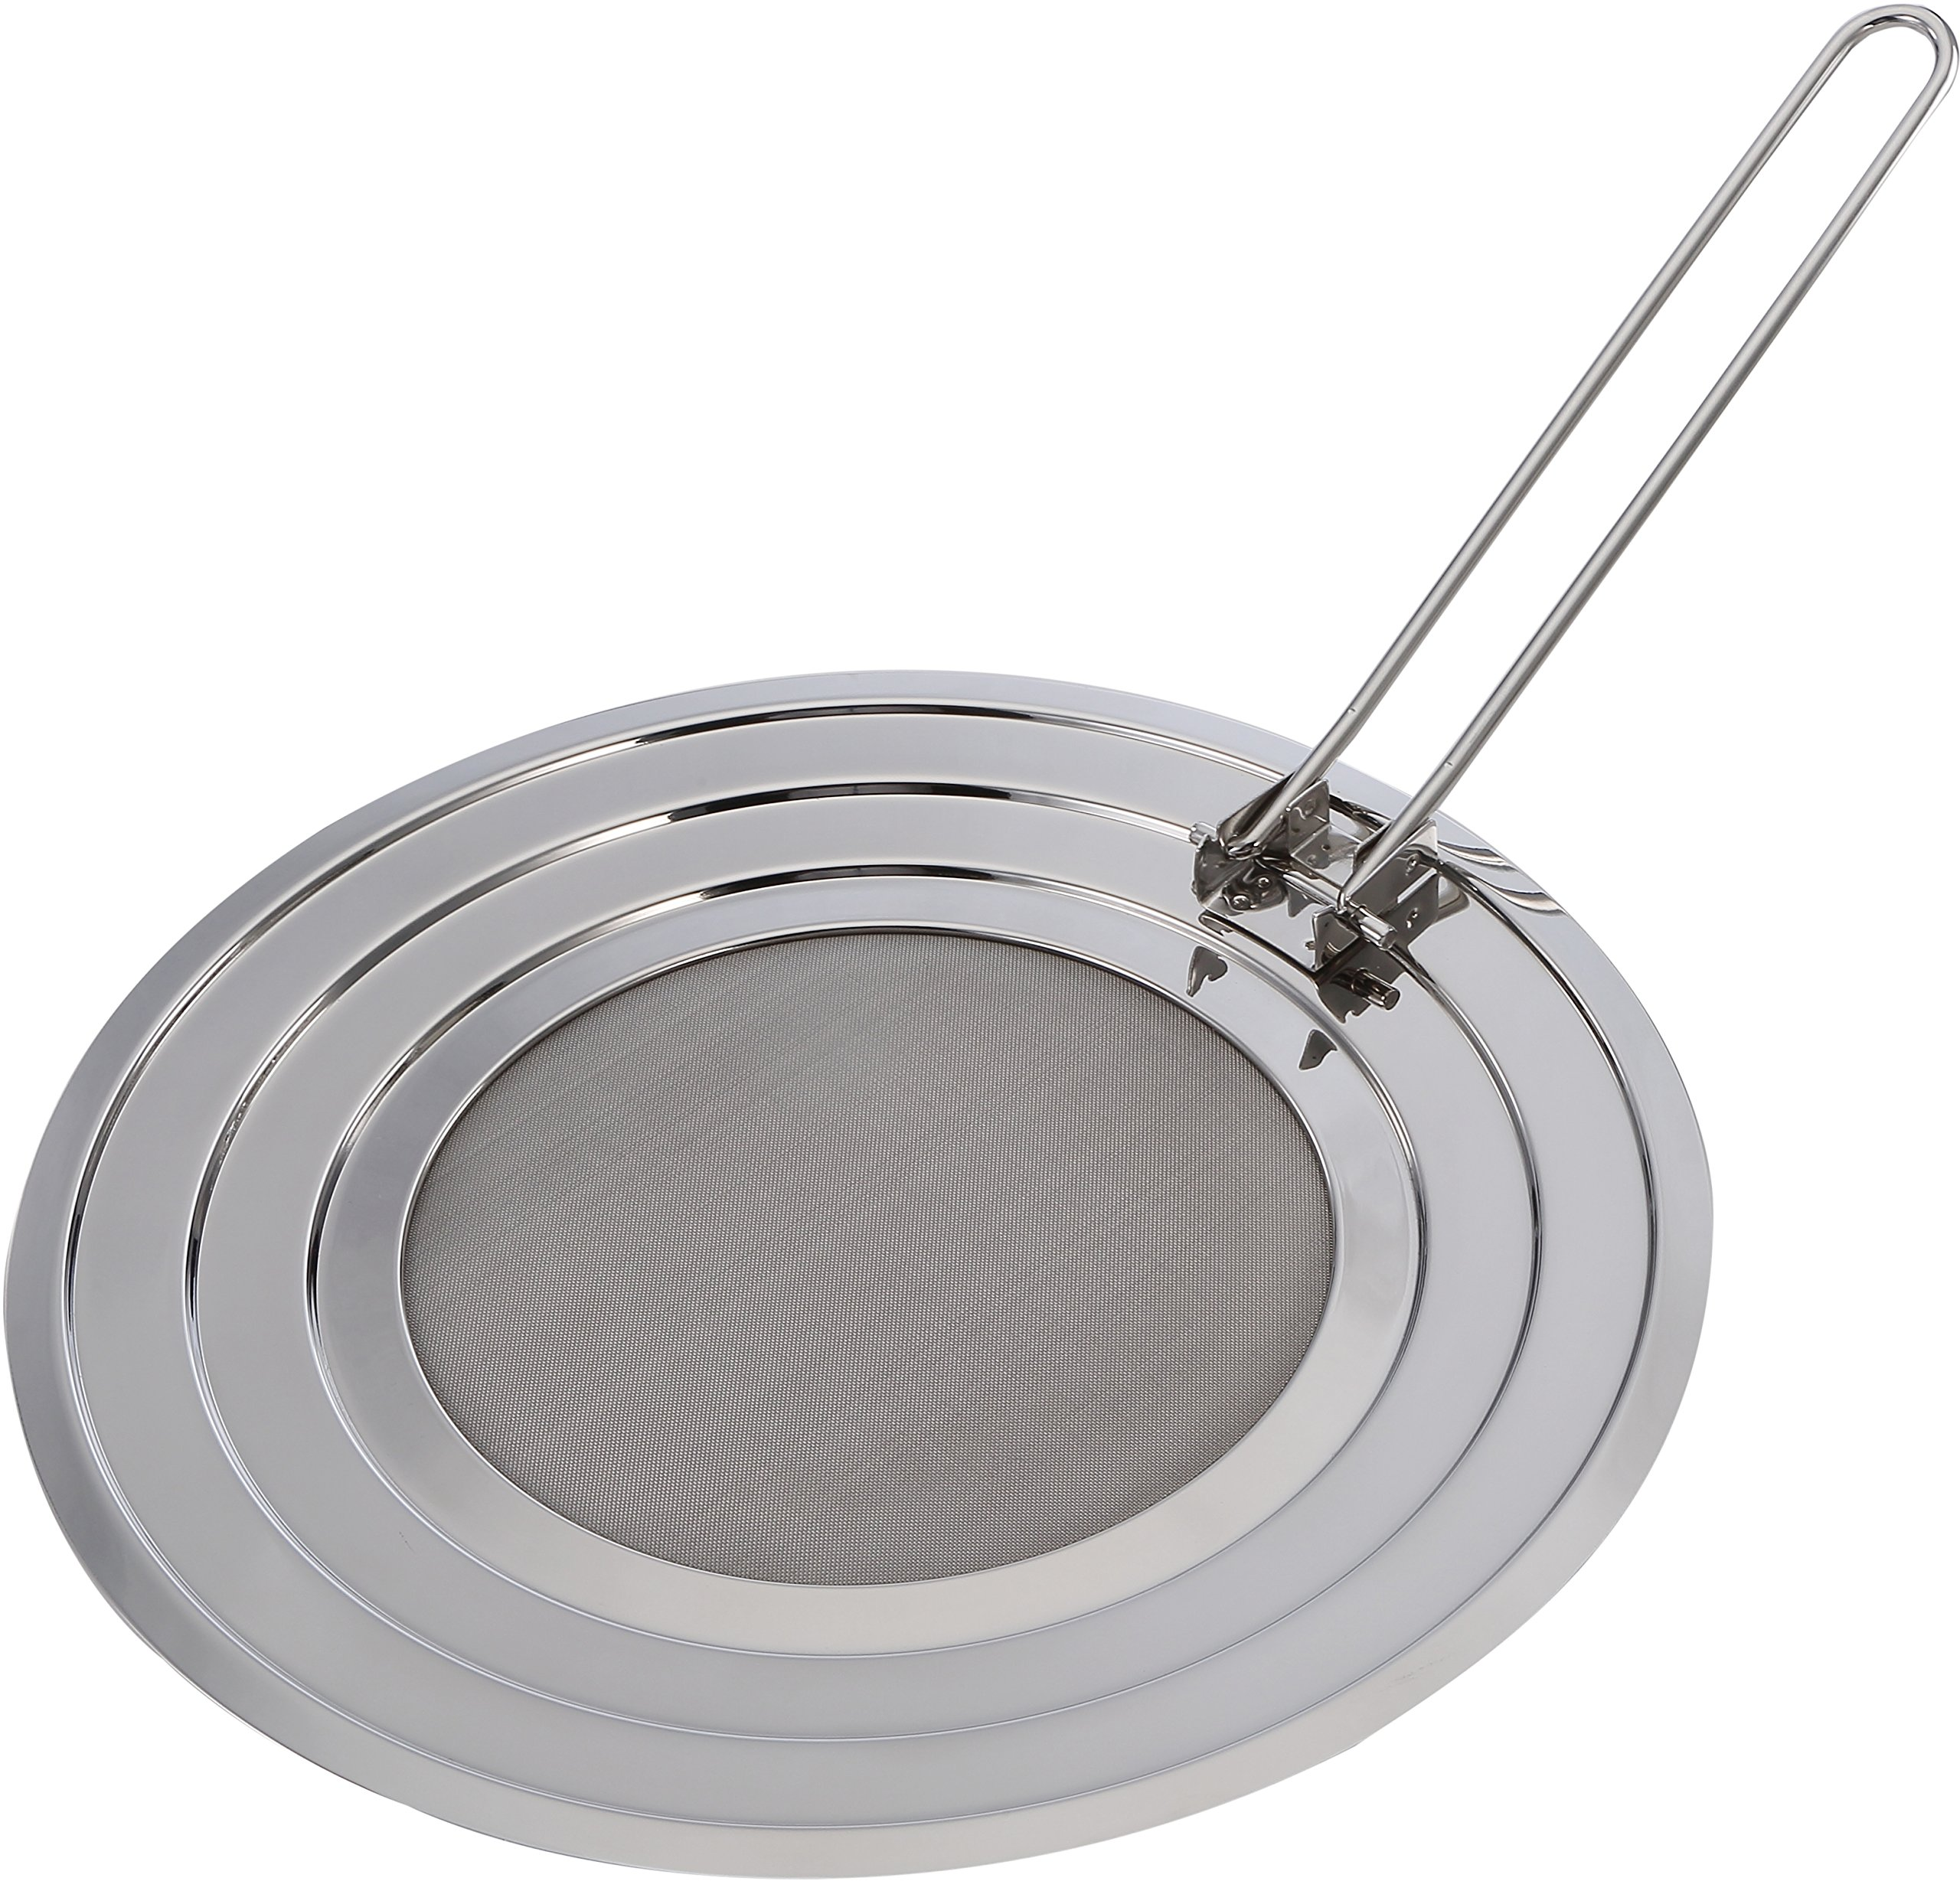 Pro Chef Kitchen Stainless Steel Cooking Grease Mess Eliminator Splatter Screen Guard for Frying Crisp Bacon